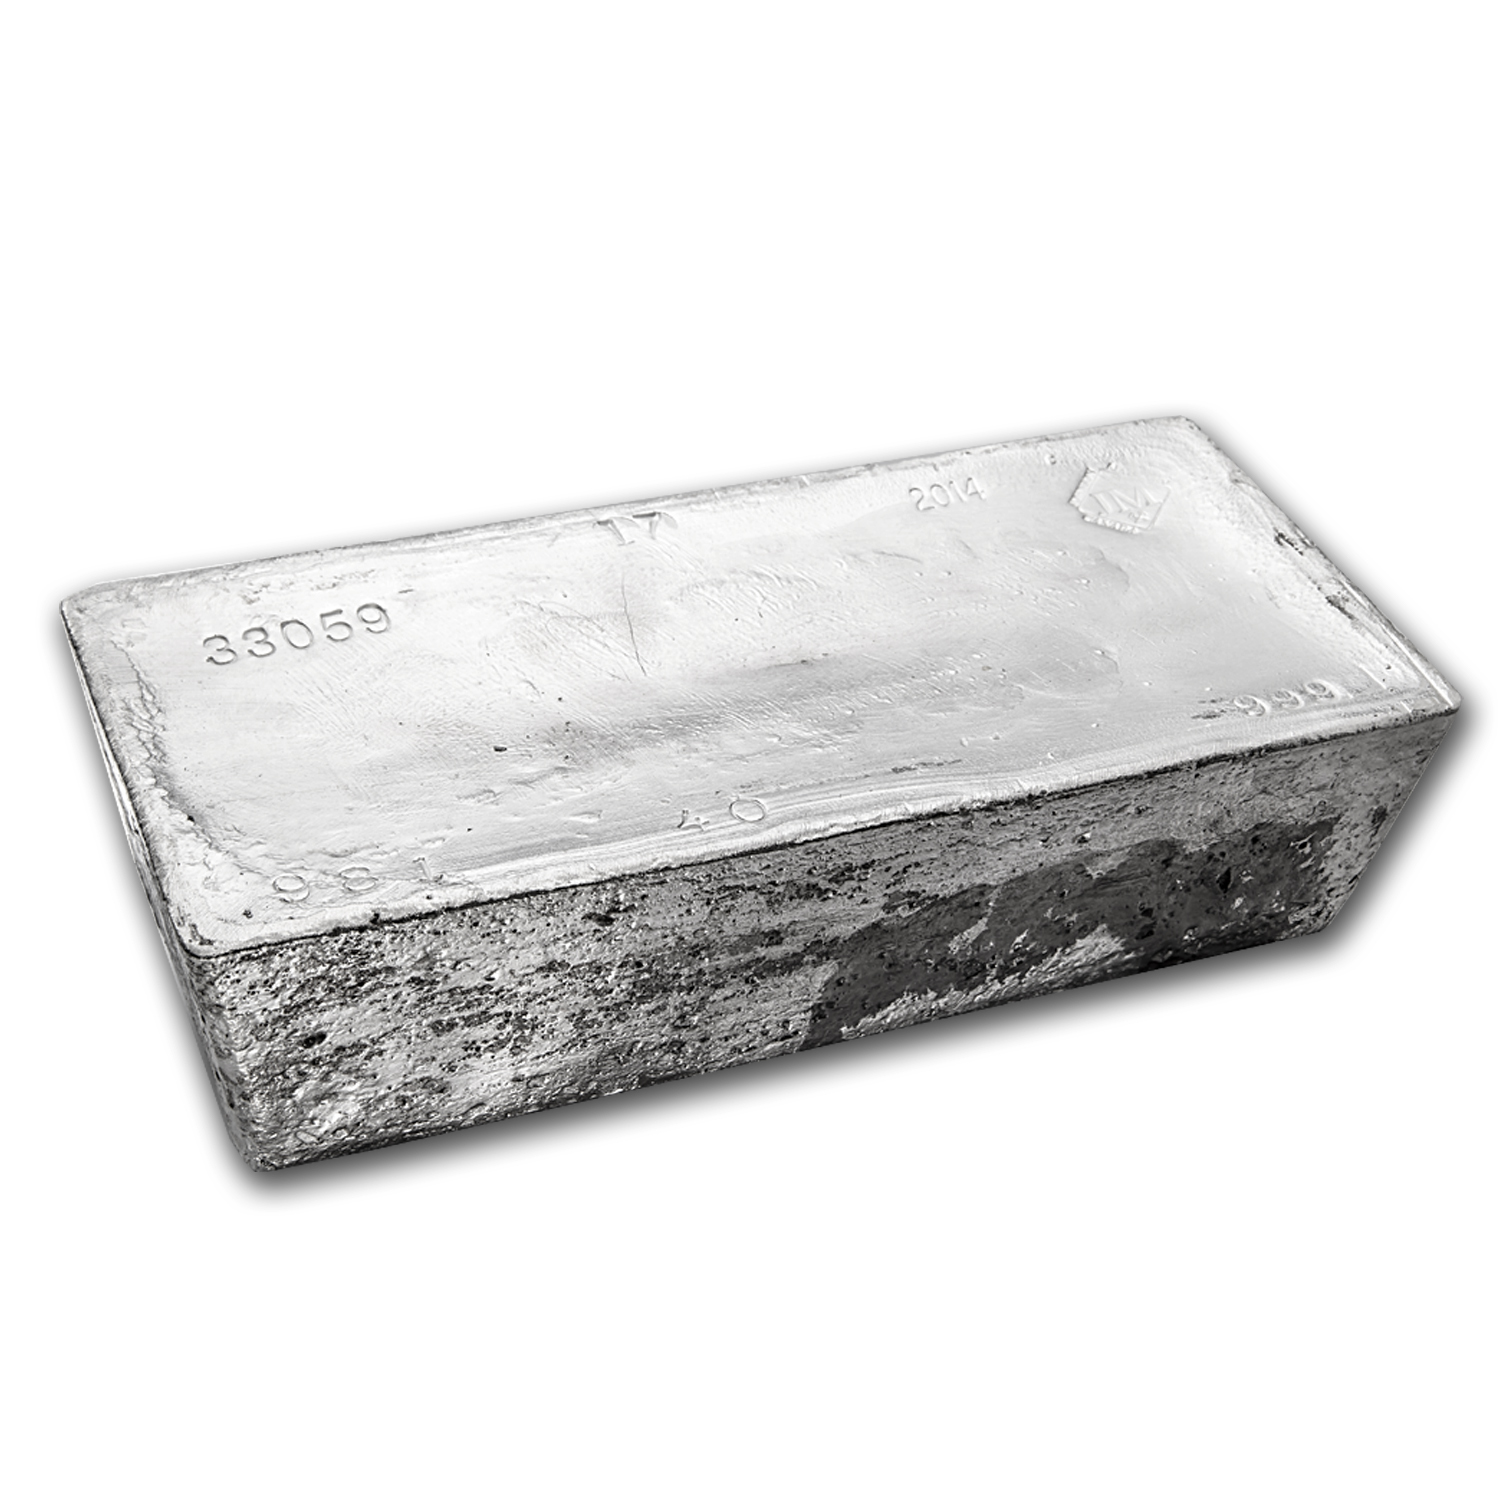 966.30 oz Silver Bar - Johnson Matthey